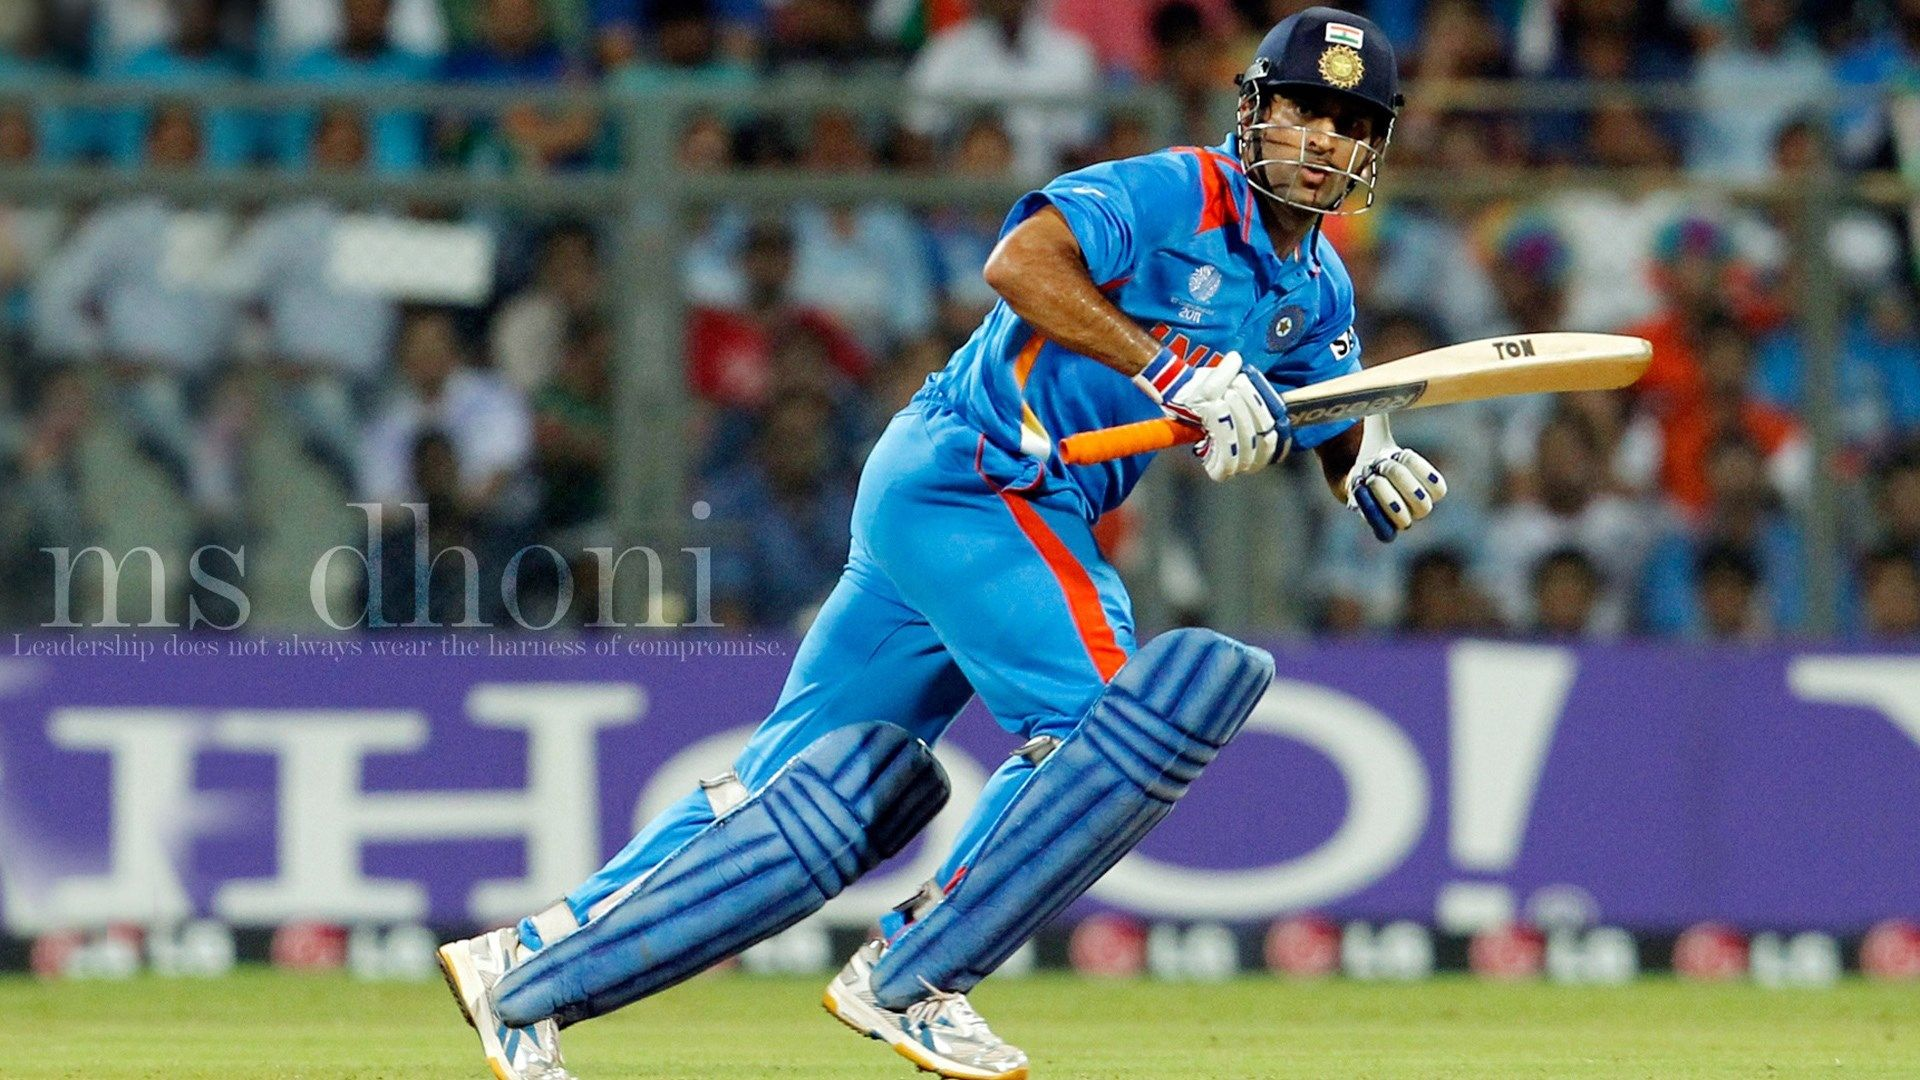 1416720 Mahendra Singh Dhoni Category High Resolution Wallpapers Mahendra Singh Dhoni Pic Dhoni Wallpapers Ms Dhoni Wallpapers Cricket Teams